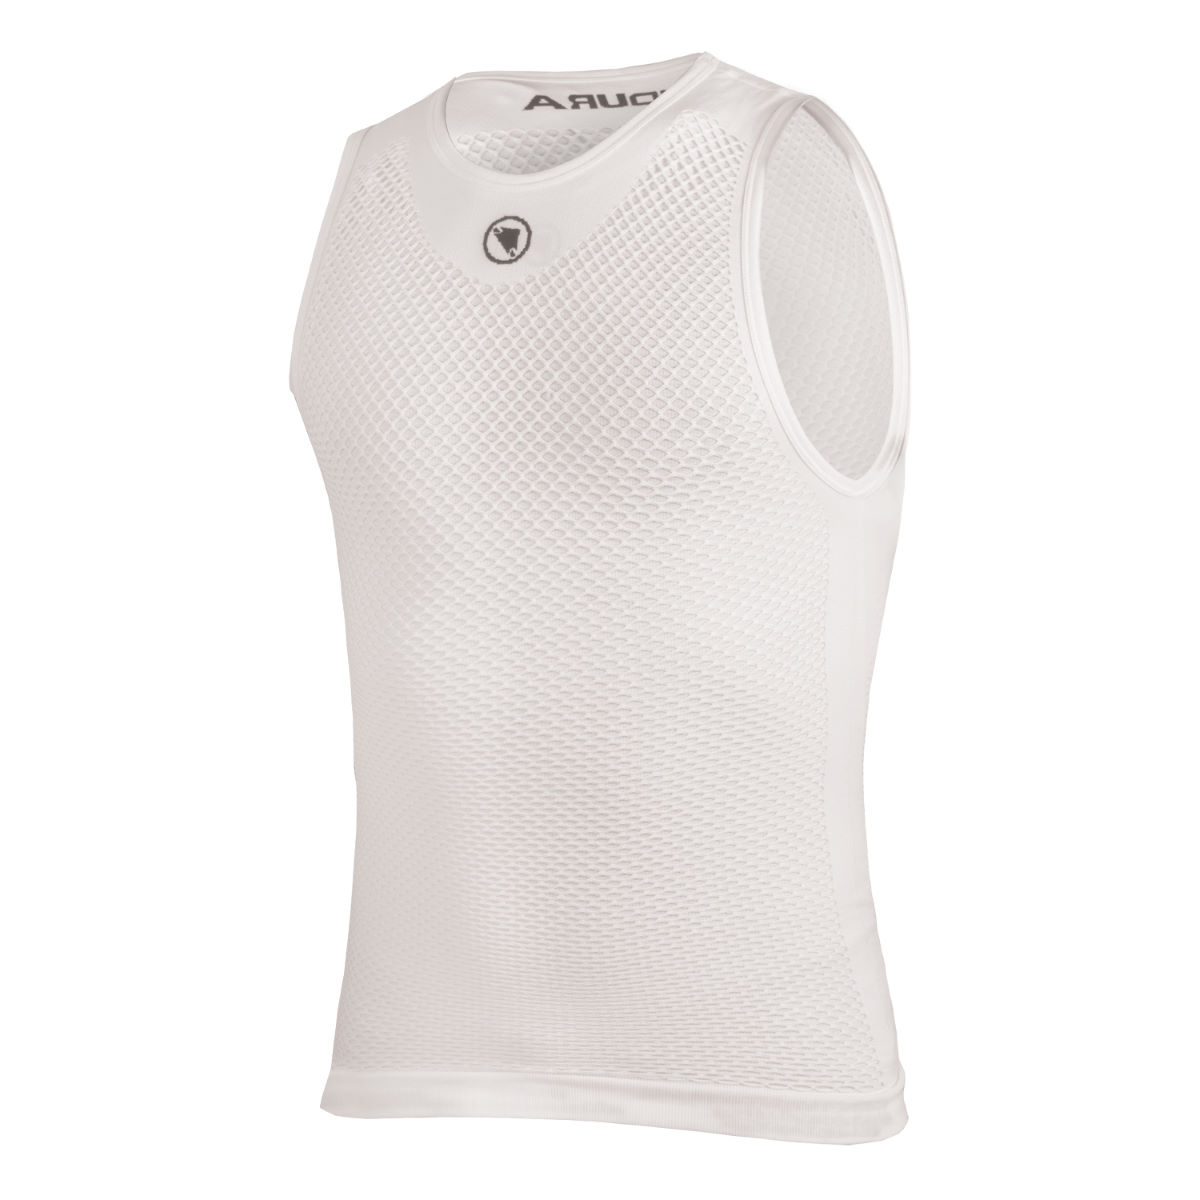 Endura fishnet sleeveless base layer base layers white e3070wh s m